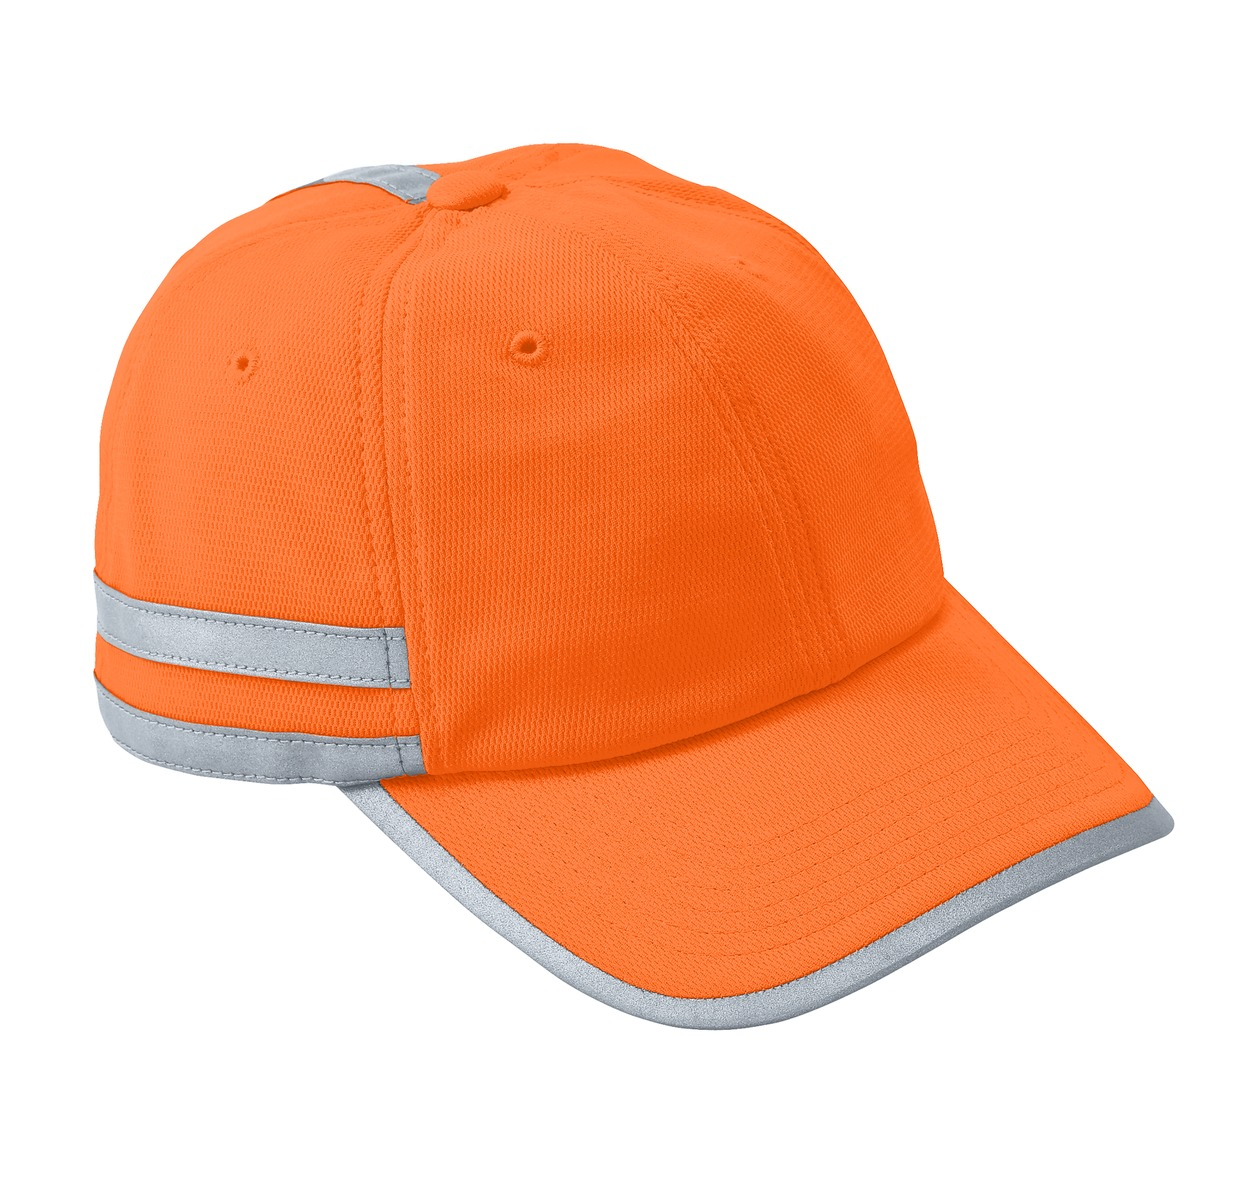 CornerStone® - ANSI 107 Safety Cap. WITH YOUR COMPANY NAME OR LOGO